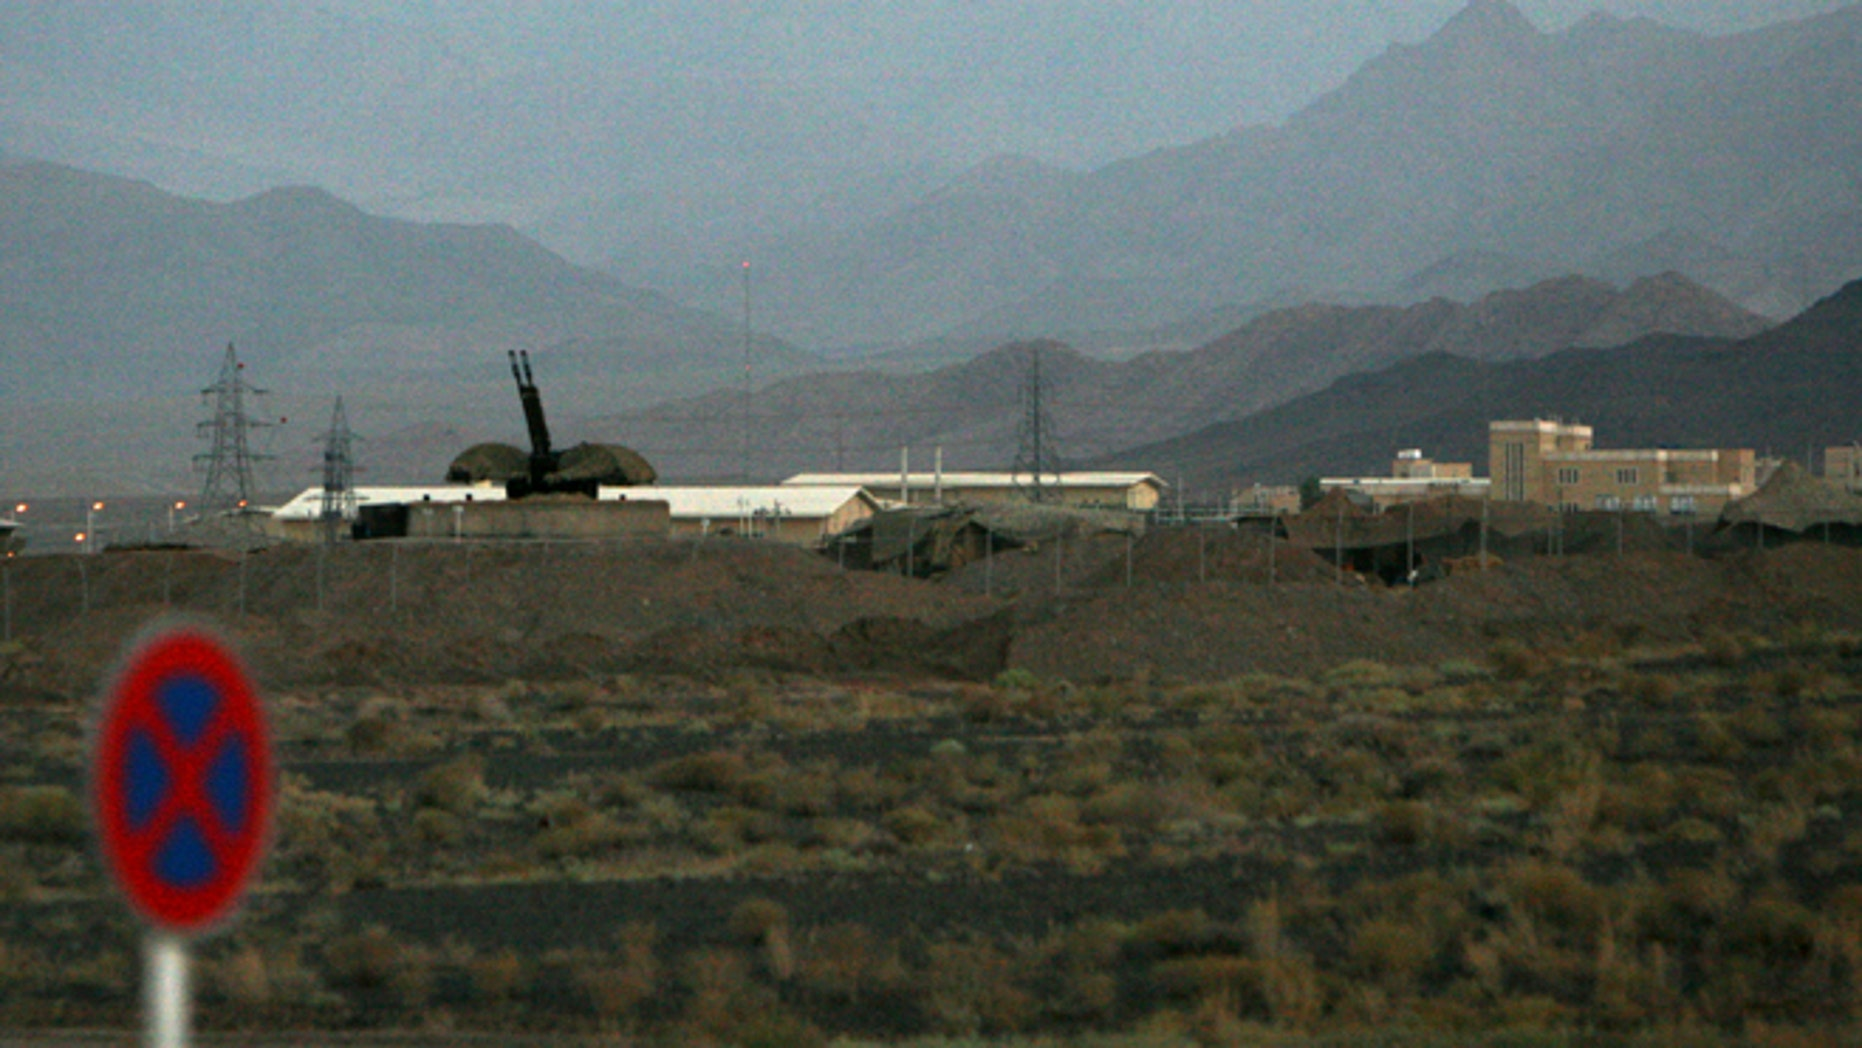 In this Sept. 2007 file picture an anti-aircraft gun position is seen at Iran's nuclear enrichment facility in Natanz, Iran. Iran is poised for a major technological update of its uranium enrichment program, allowing it to vastly increase production of the material that can be used for both reactor fuel and nuclear warheads, diplomats told The Associated Press.